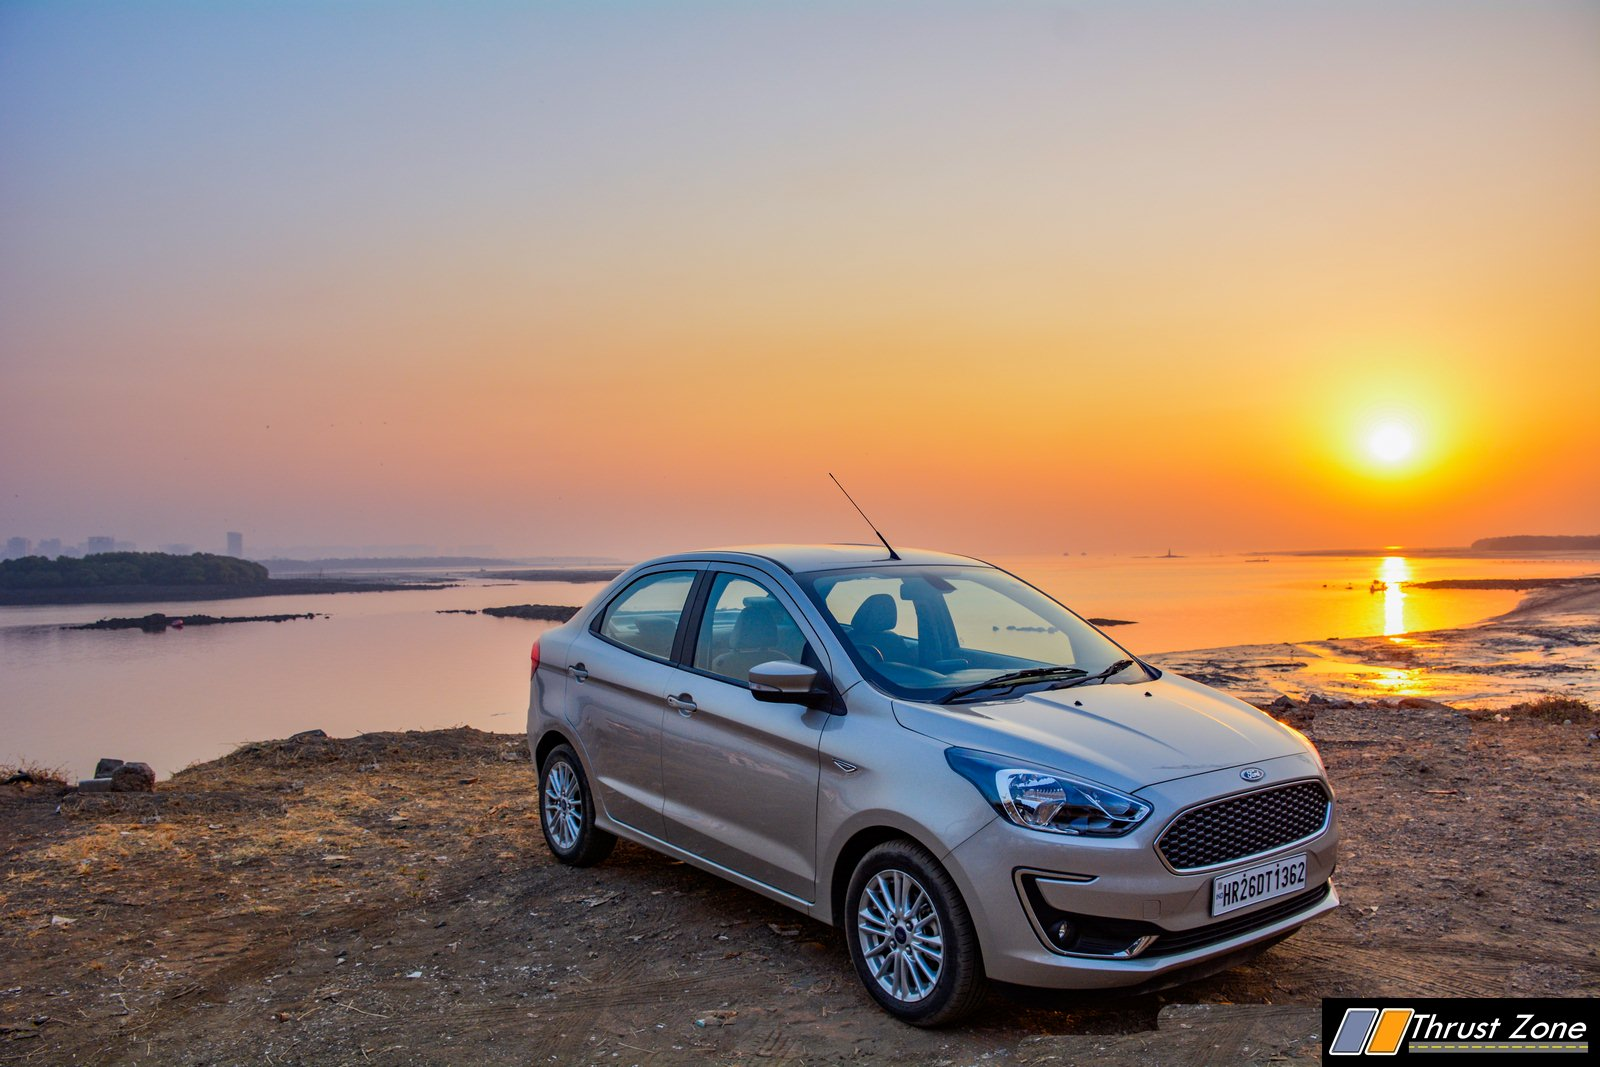 http://www.thrustzone.com/wp-content/uploads/2019/01/2018-Ford-Aspire-Diesel-Review-Road-Test-6-6.jpg